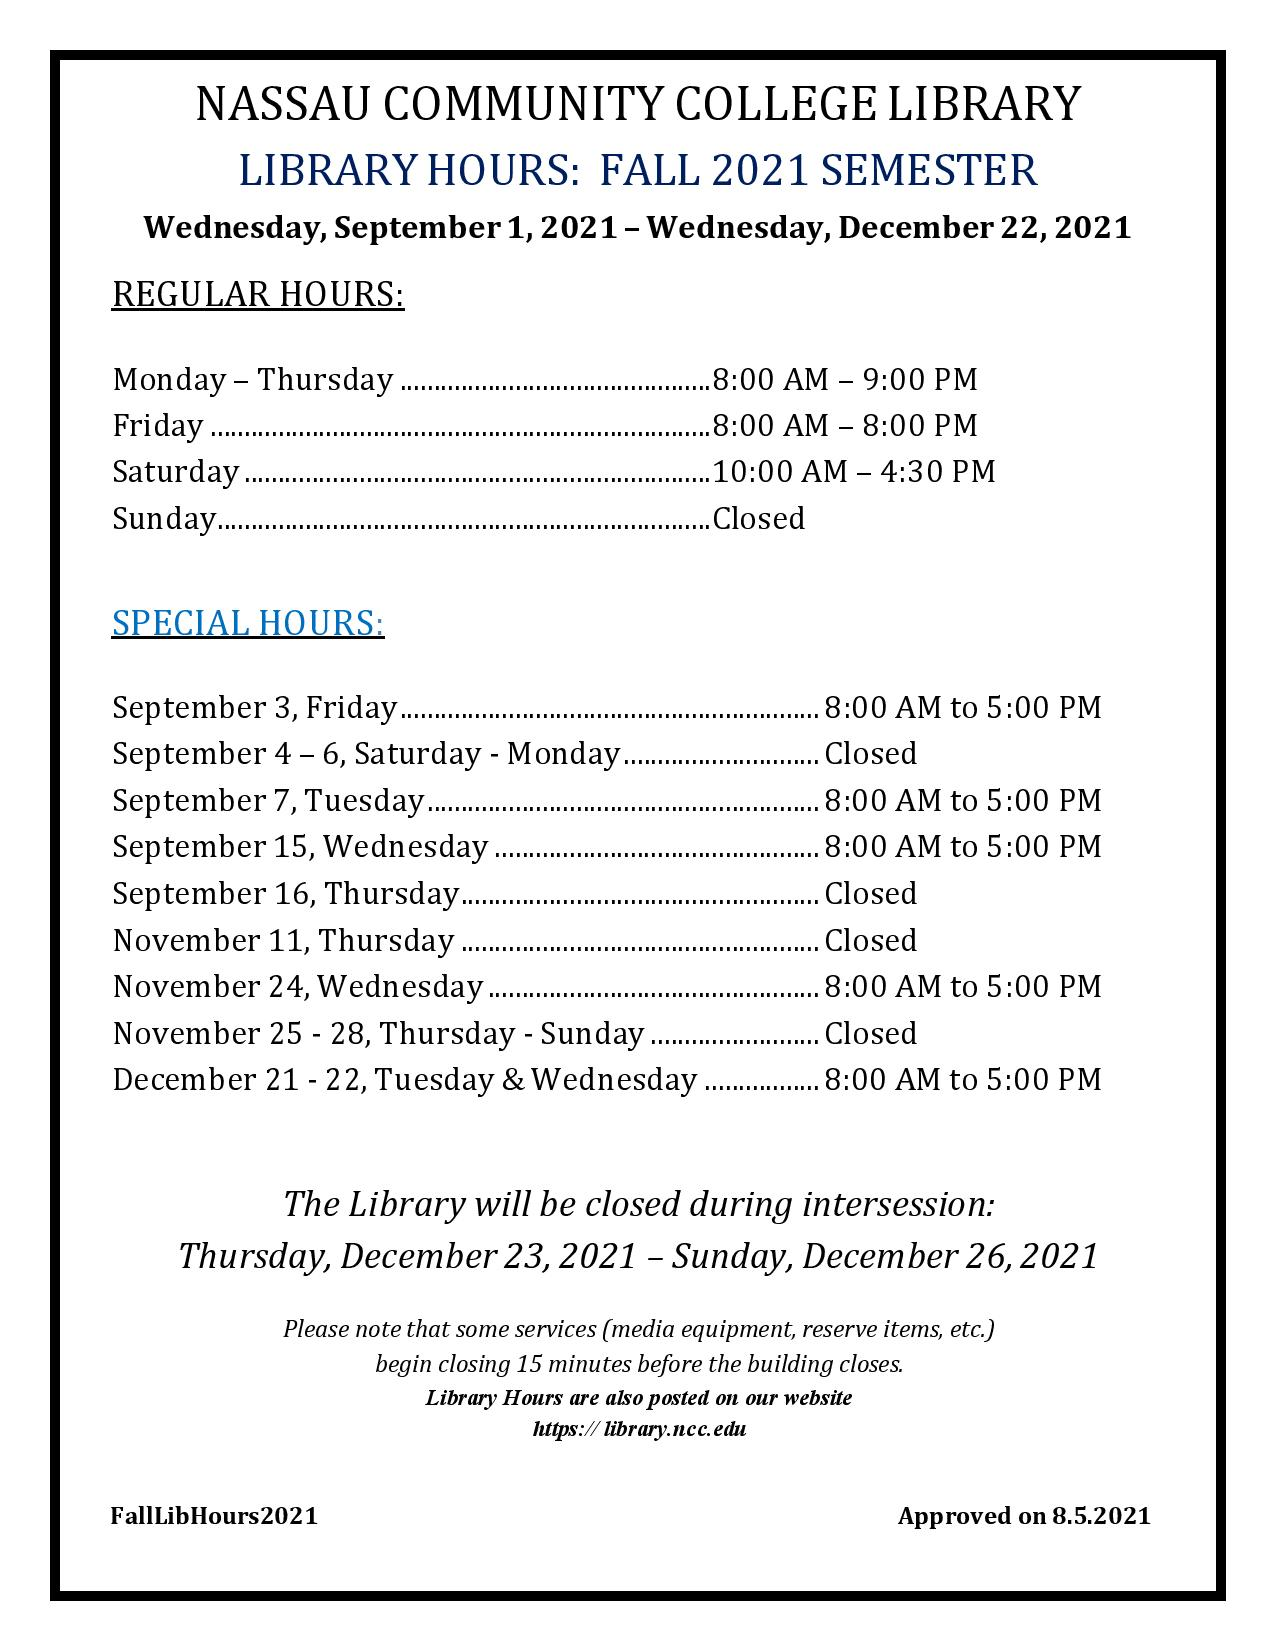 Fall 2021 library hours